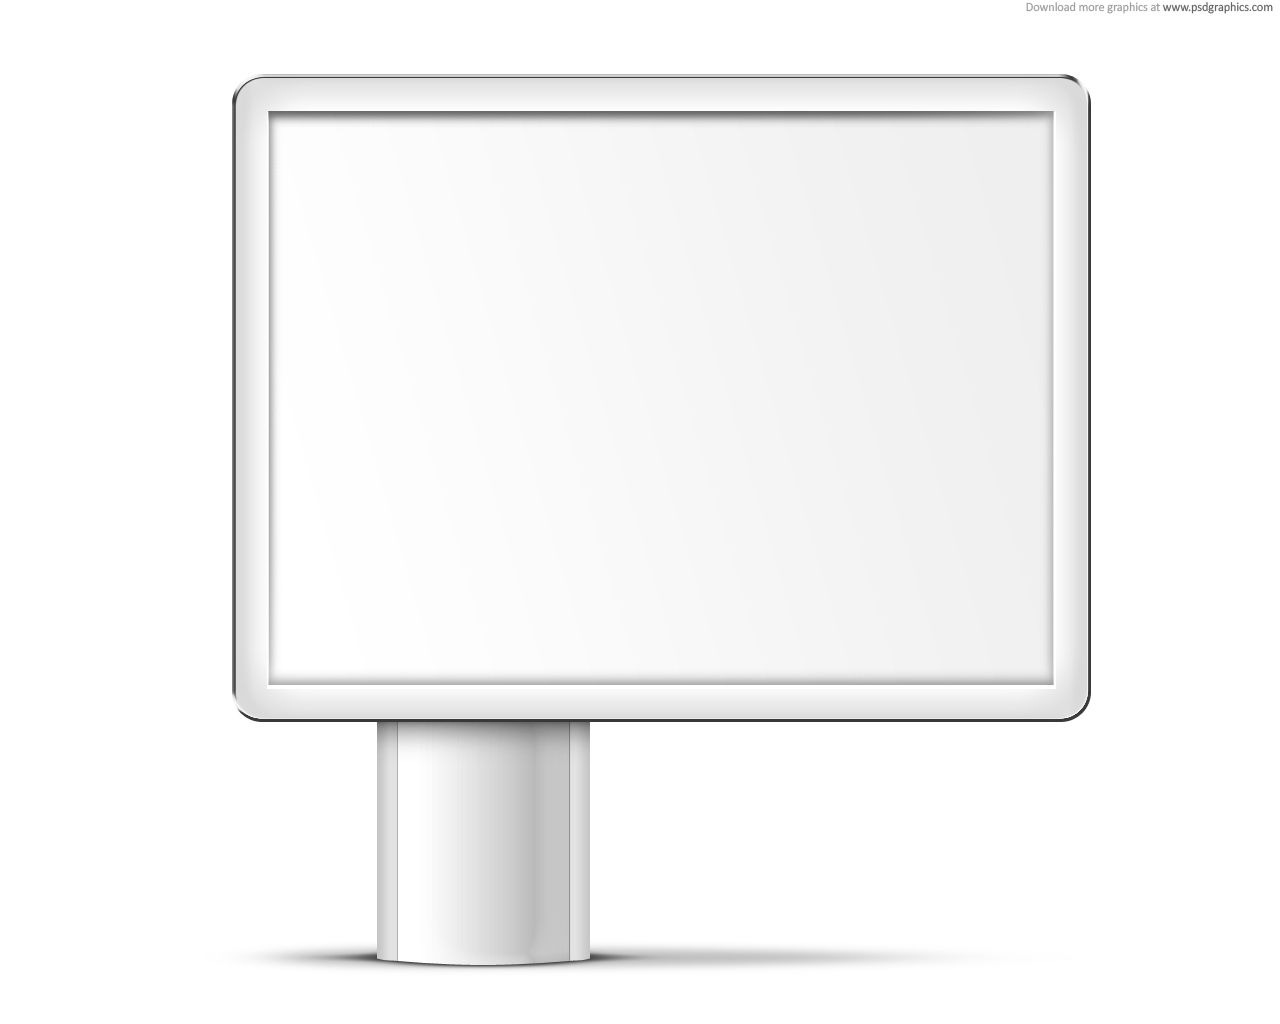 blank sign templates